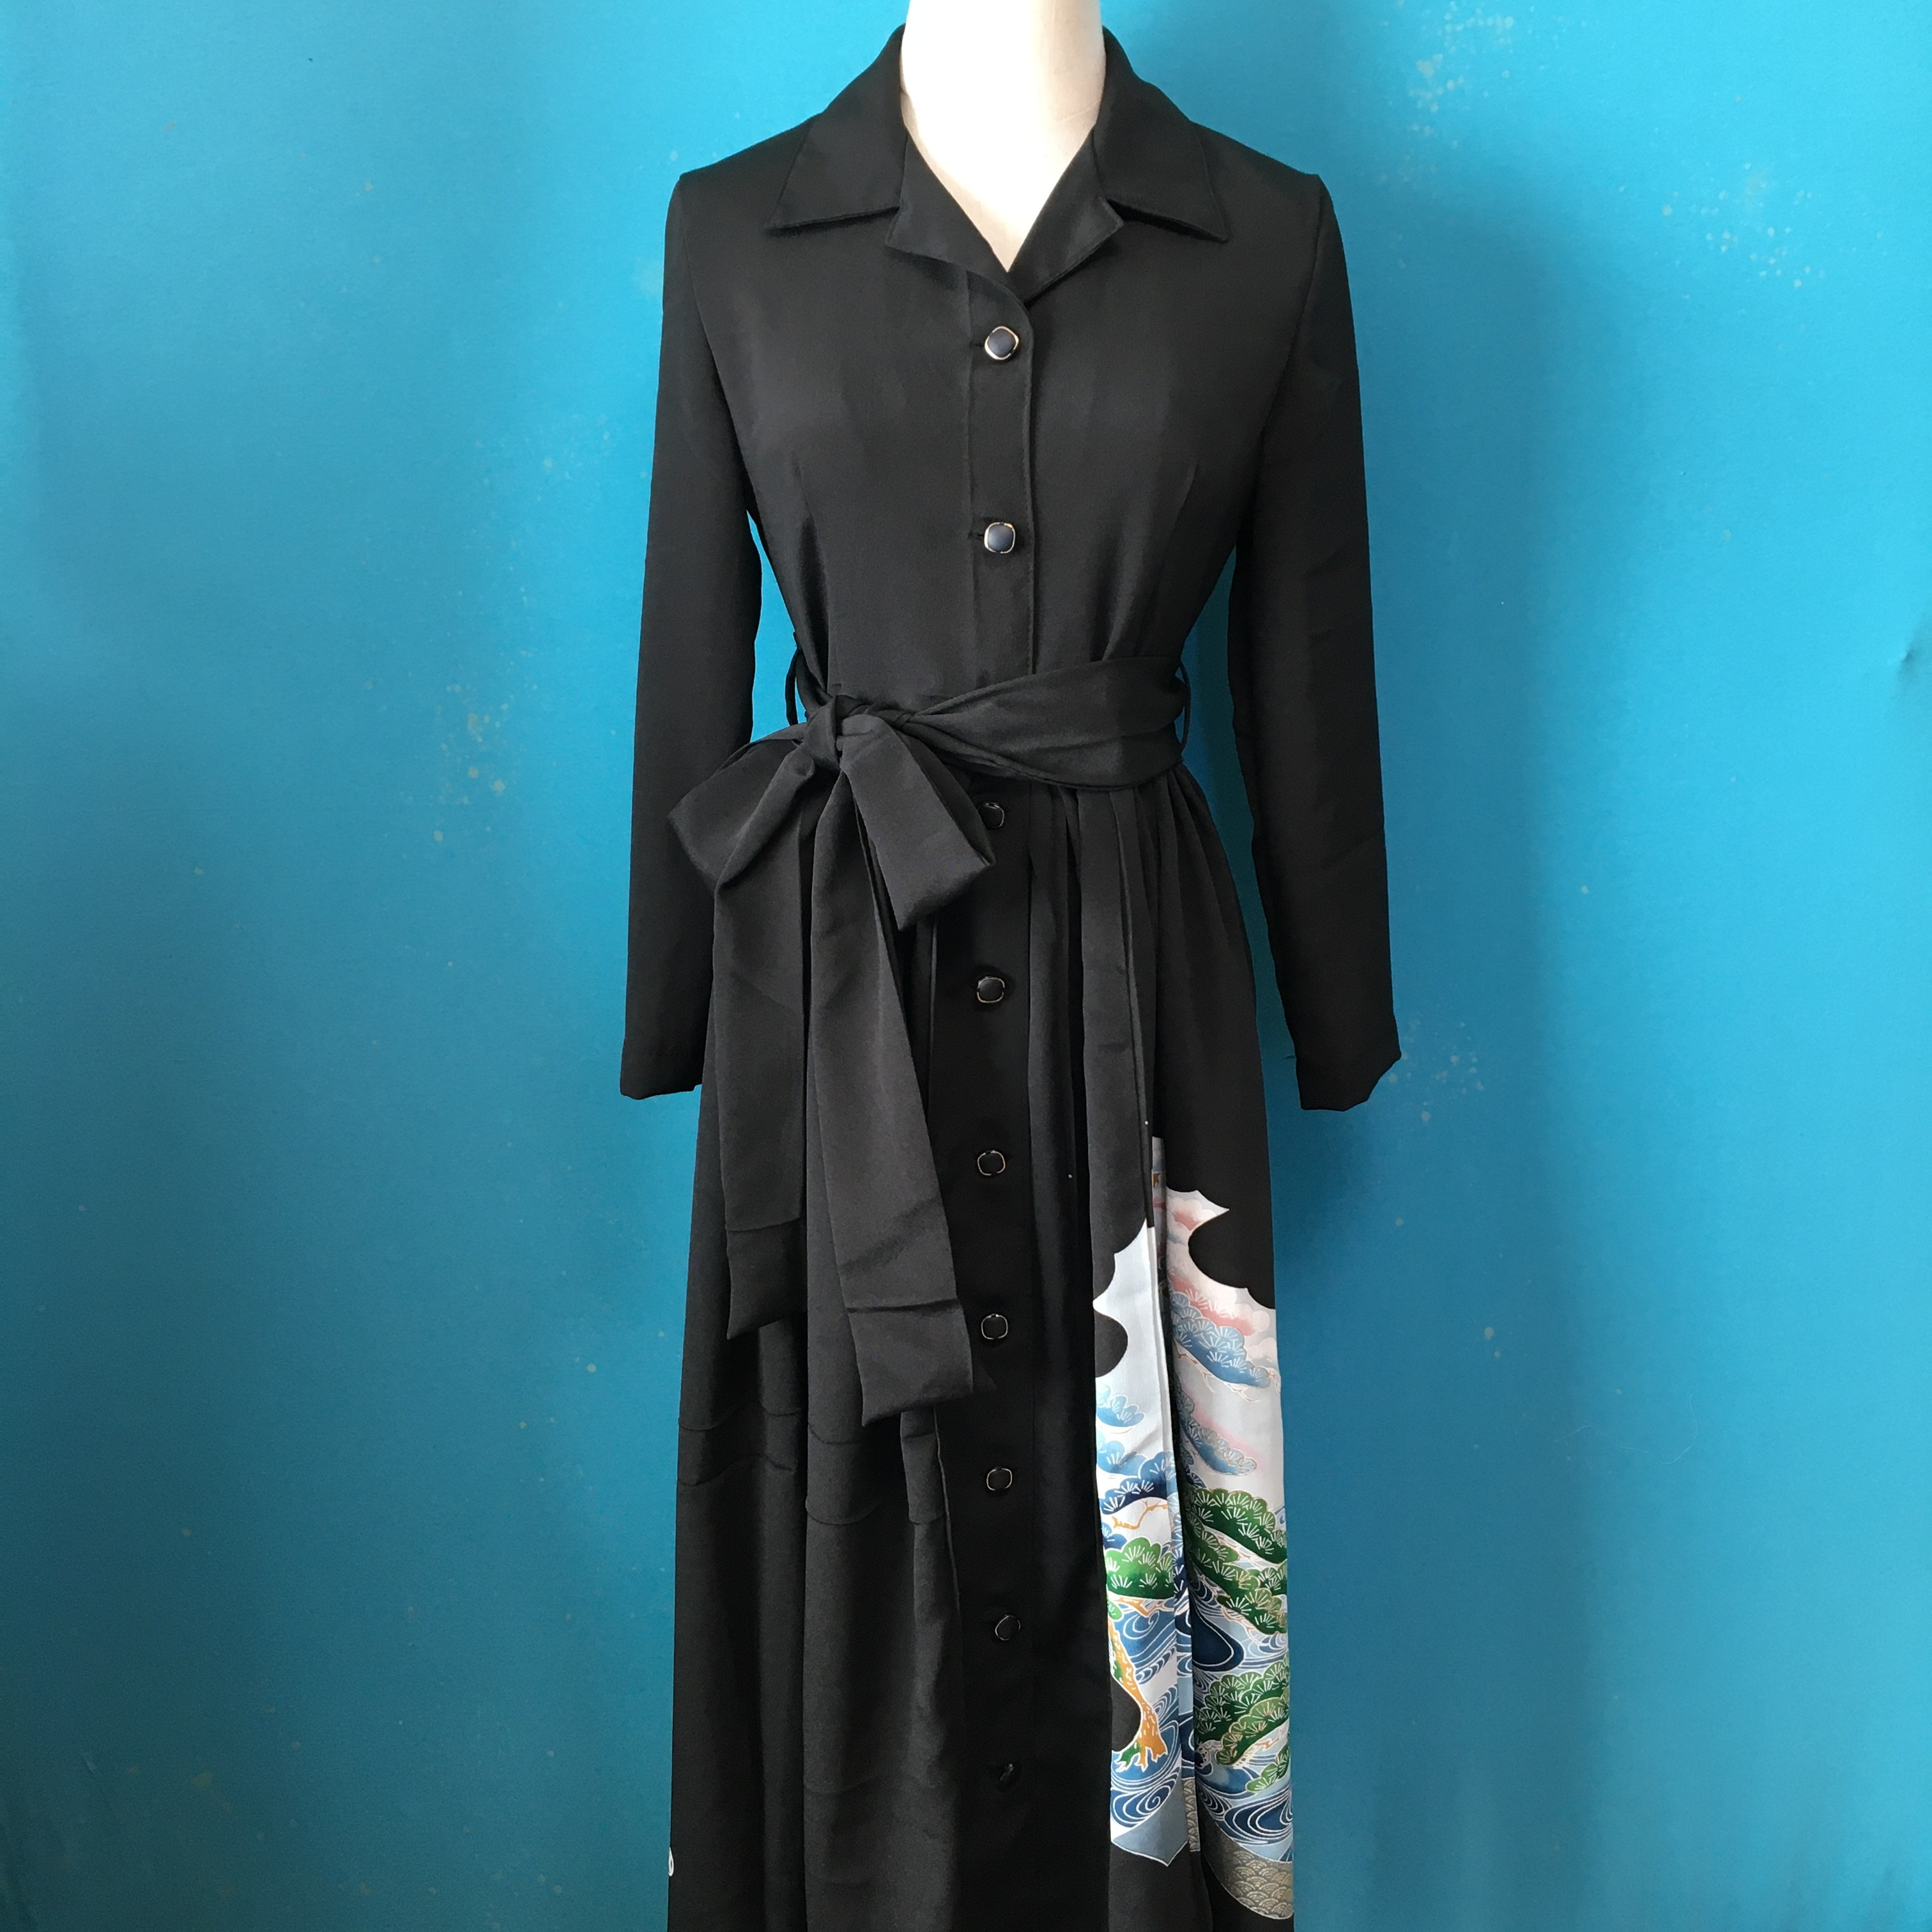 Vintage black kimono shirt dress/ US 6